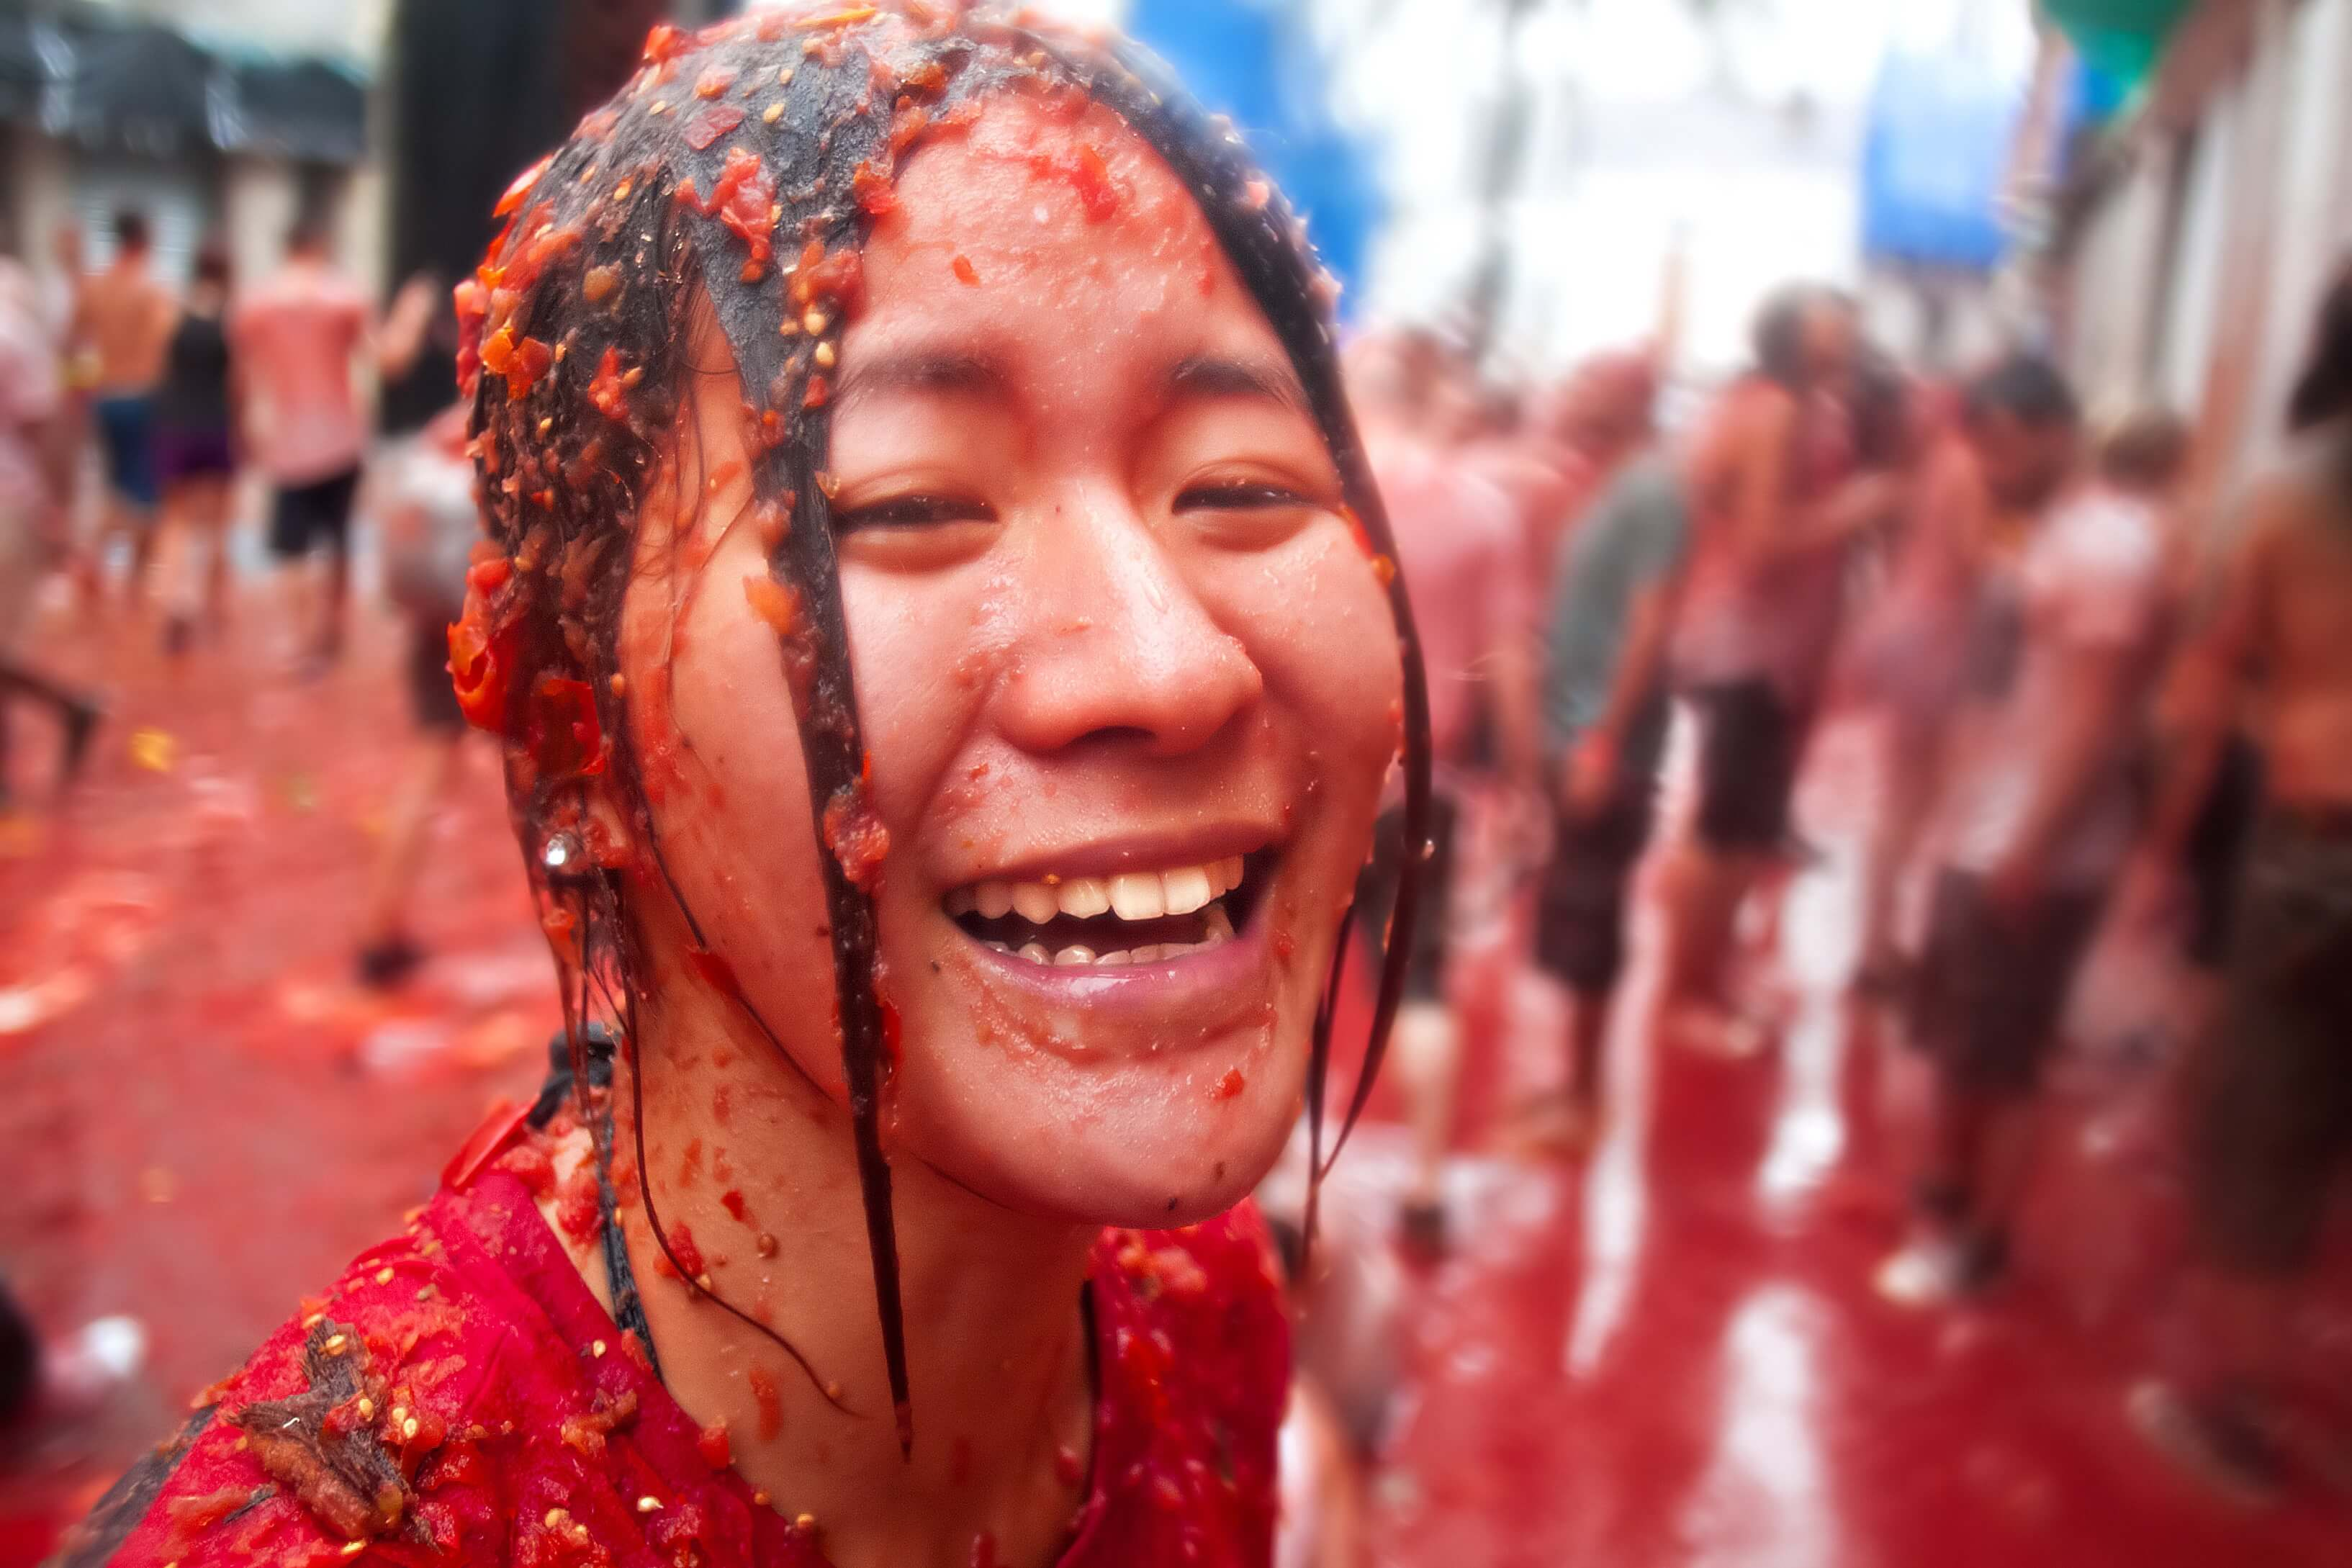 10 Travel Tips You Need to Know Before Visiting Spain - La Tomatina Festival